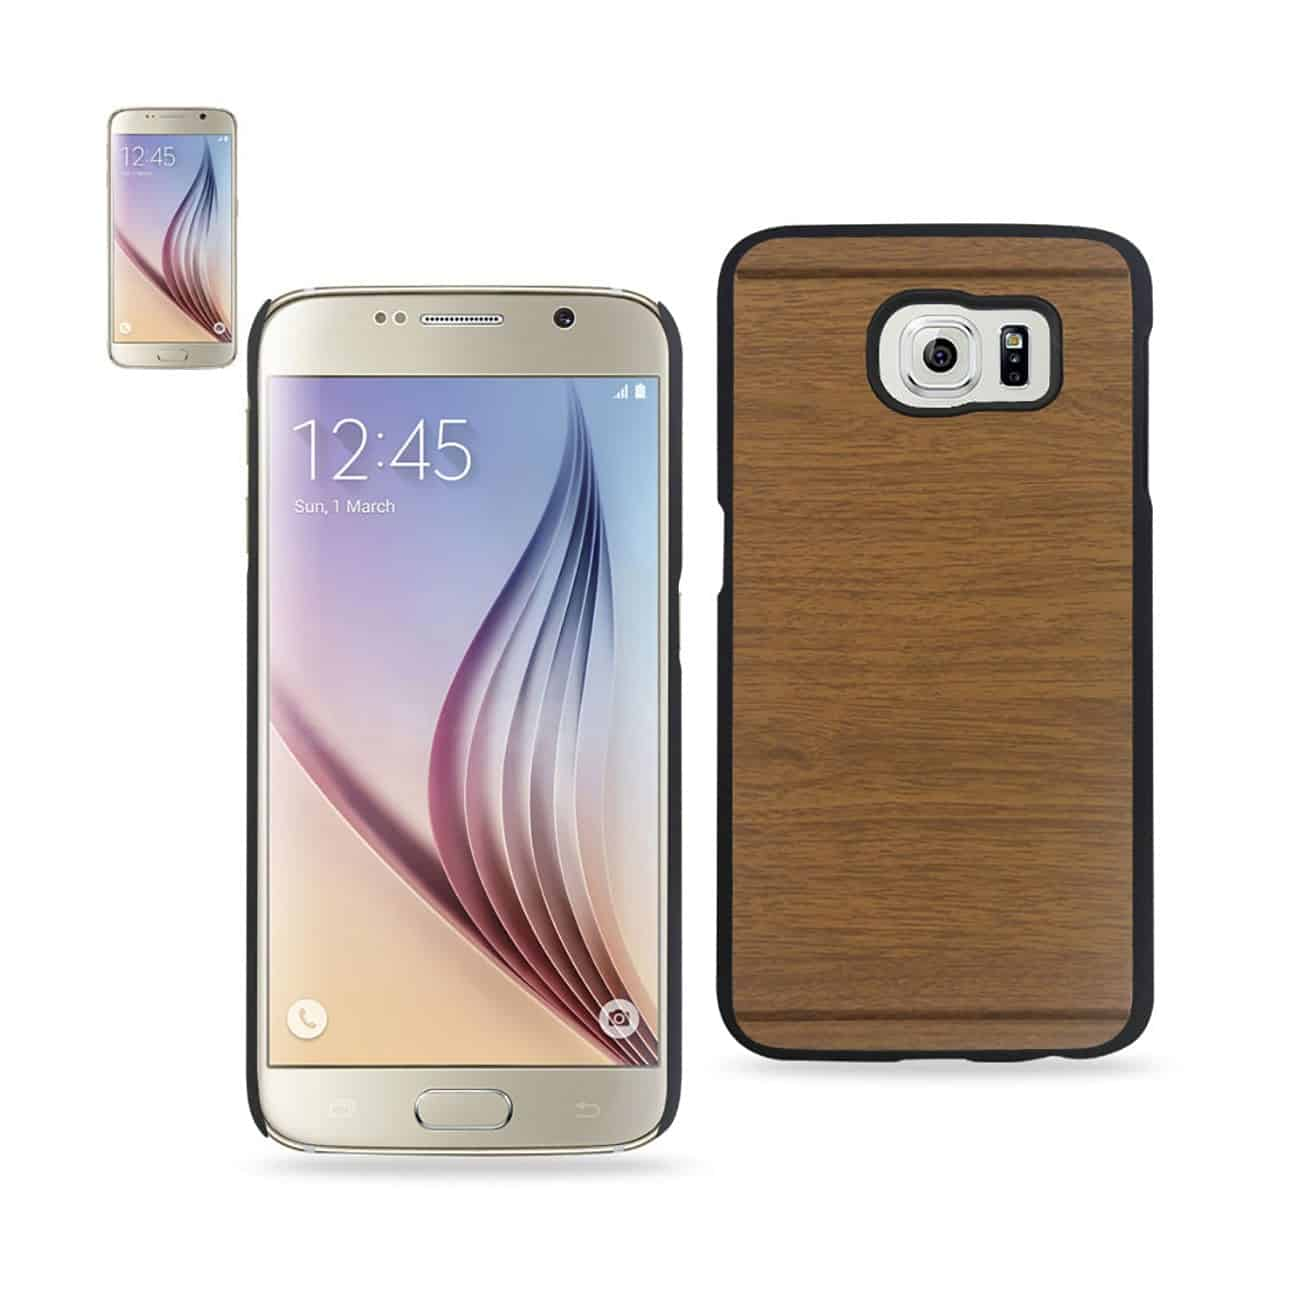 SAMSUNG GALAXY S6 WOOD PATTERN CASE IN BROWN